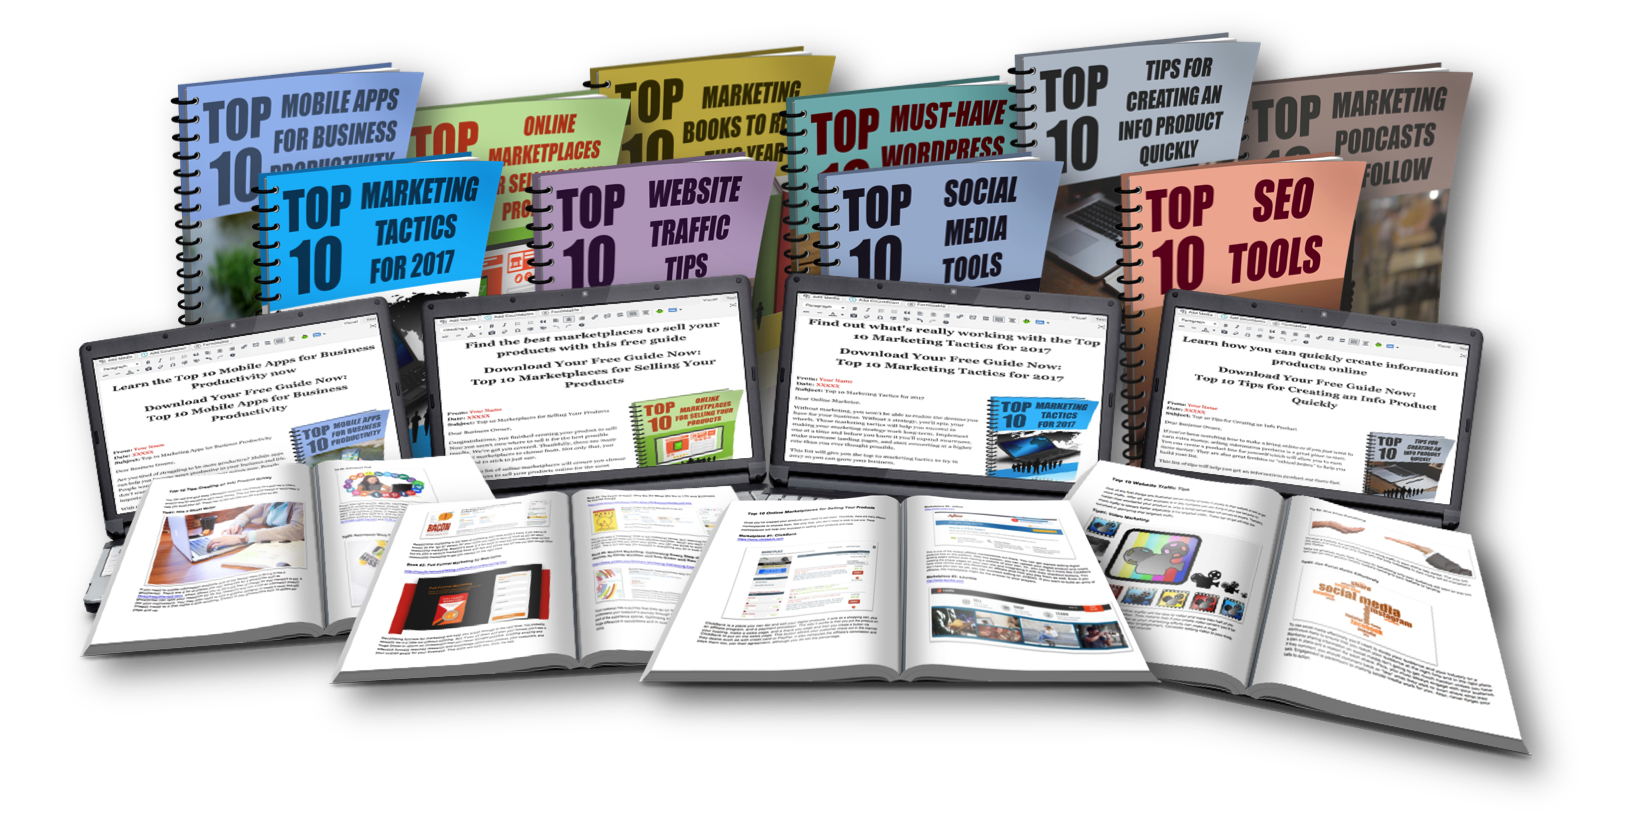 Marketing Top Ten Lists